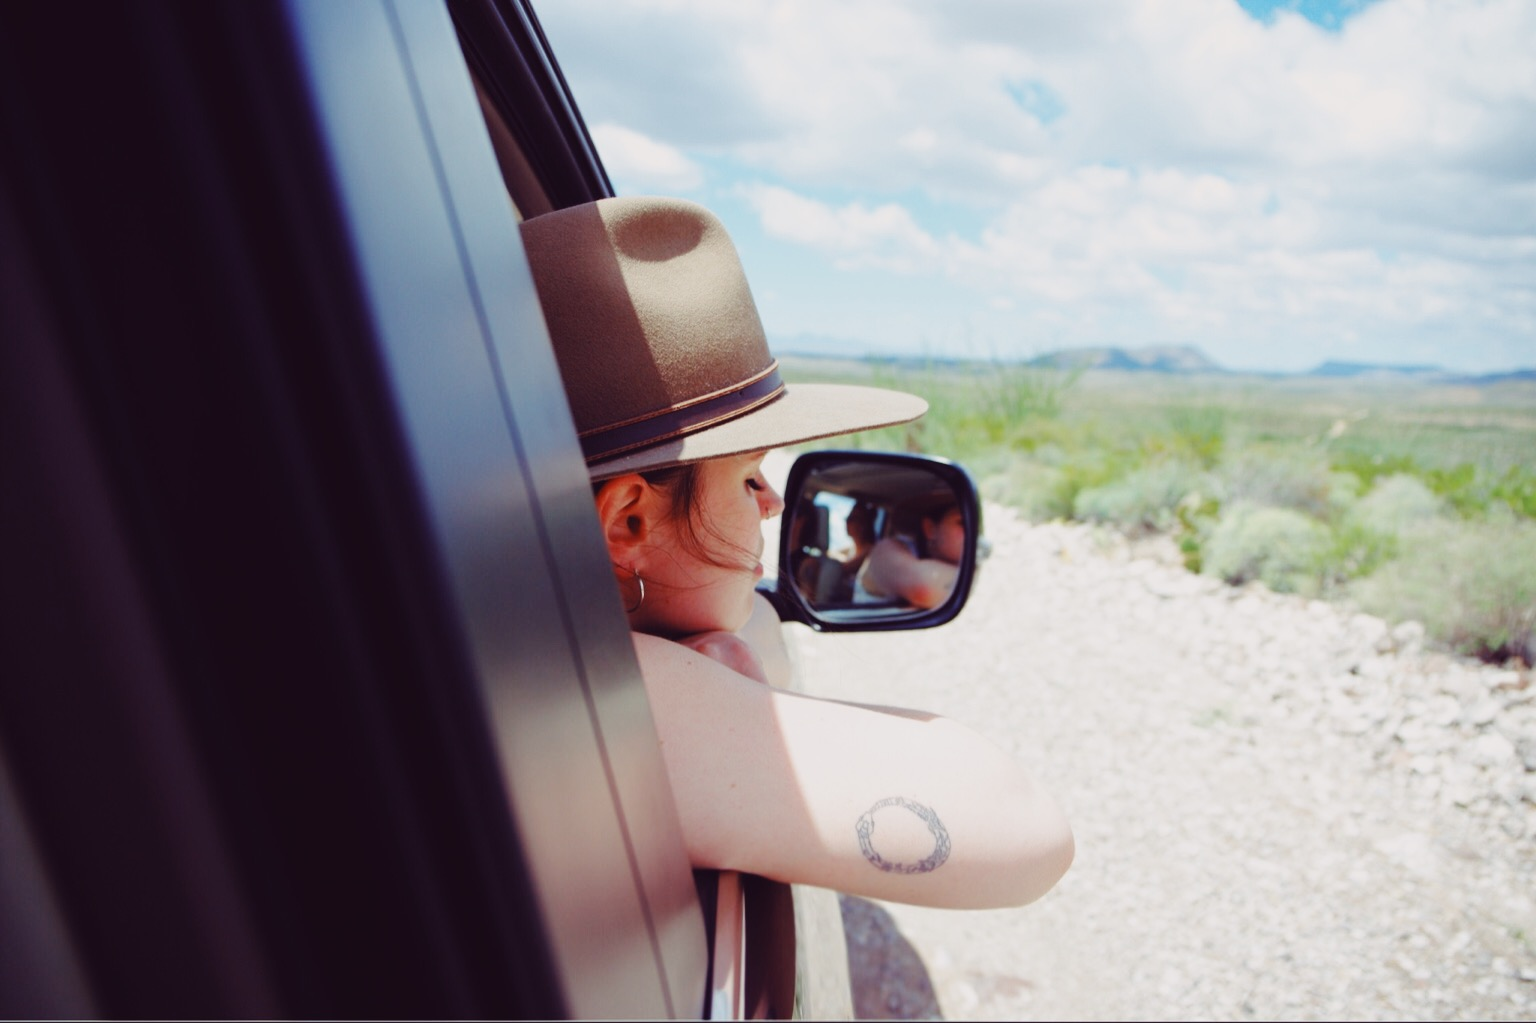 Photo by Carlos Benavides, in Marfa TX on the set of Untitled Marfa Project.